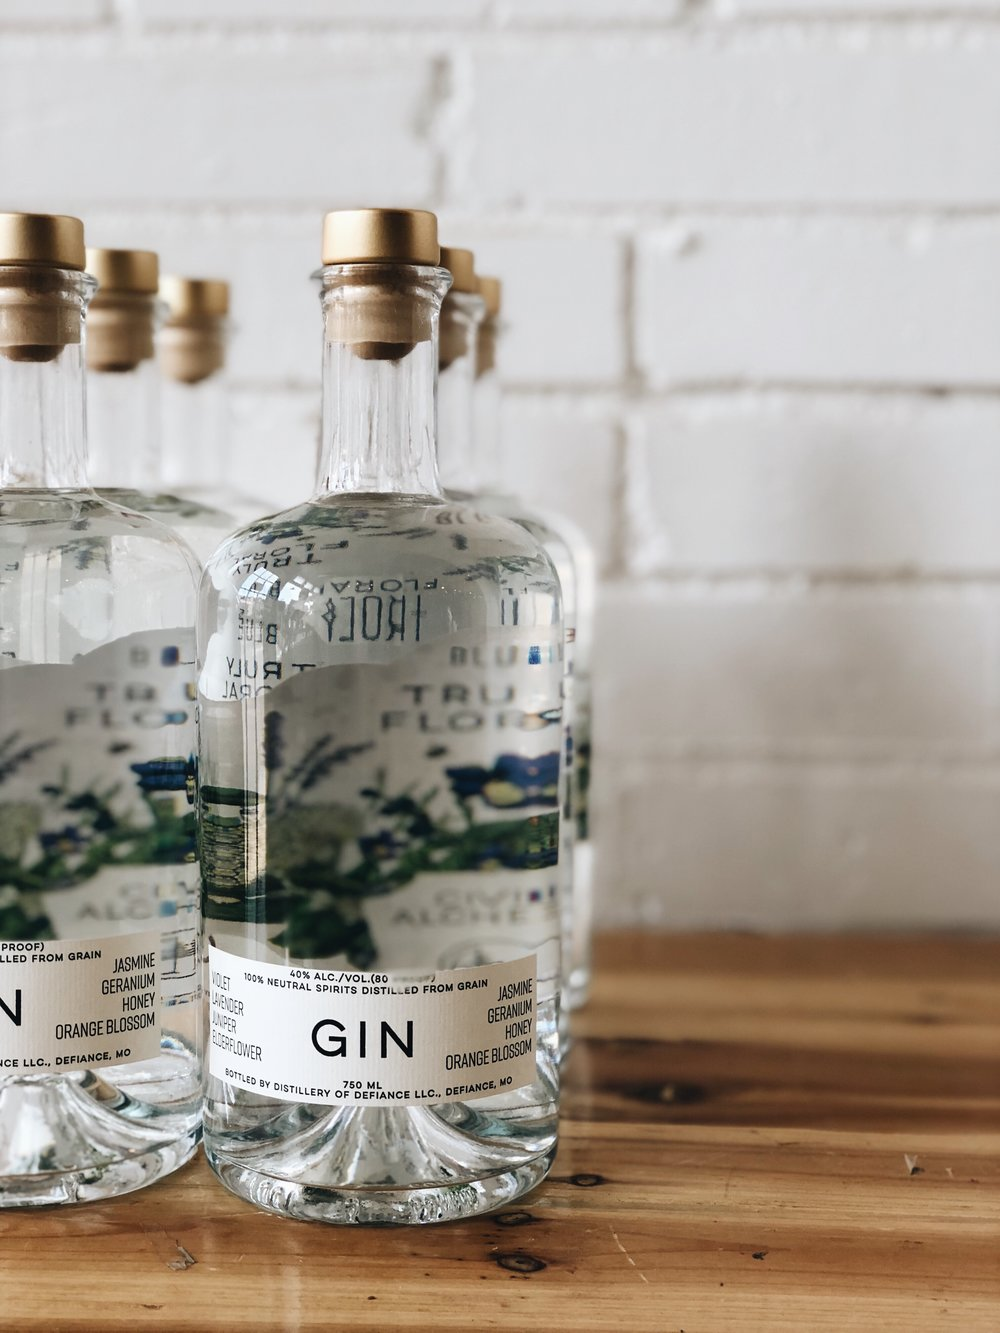 Gin especially crafted for Civil Alchemy with flavors of violet, lavender, juniper, elderflower, jasmine, geranium, honey, and orange blossom.